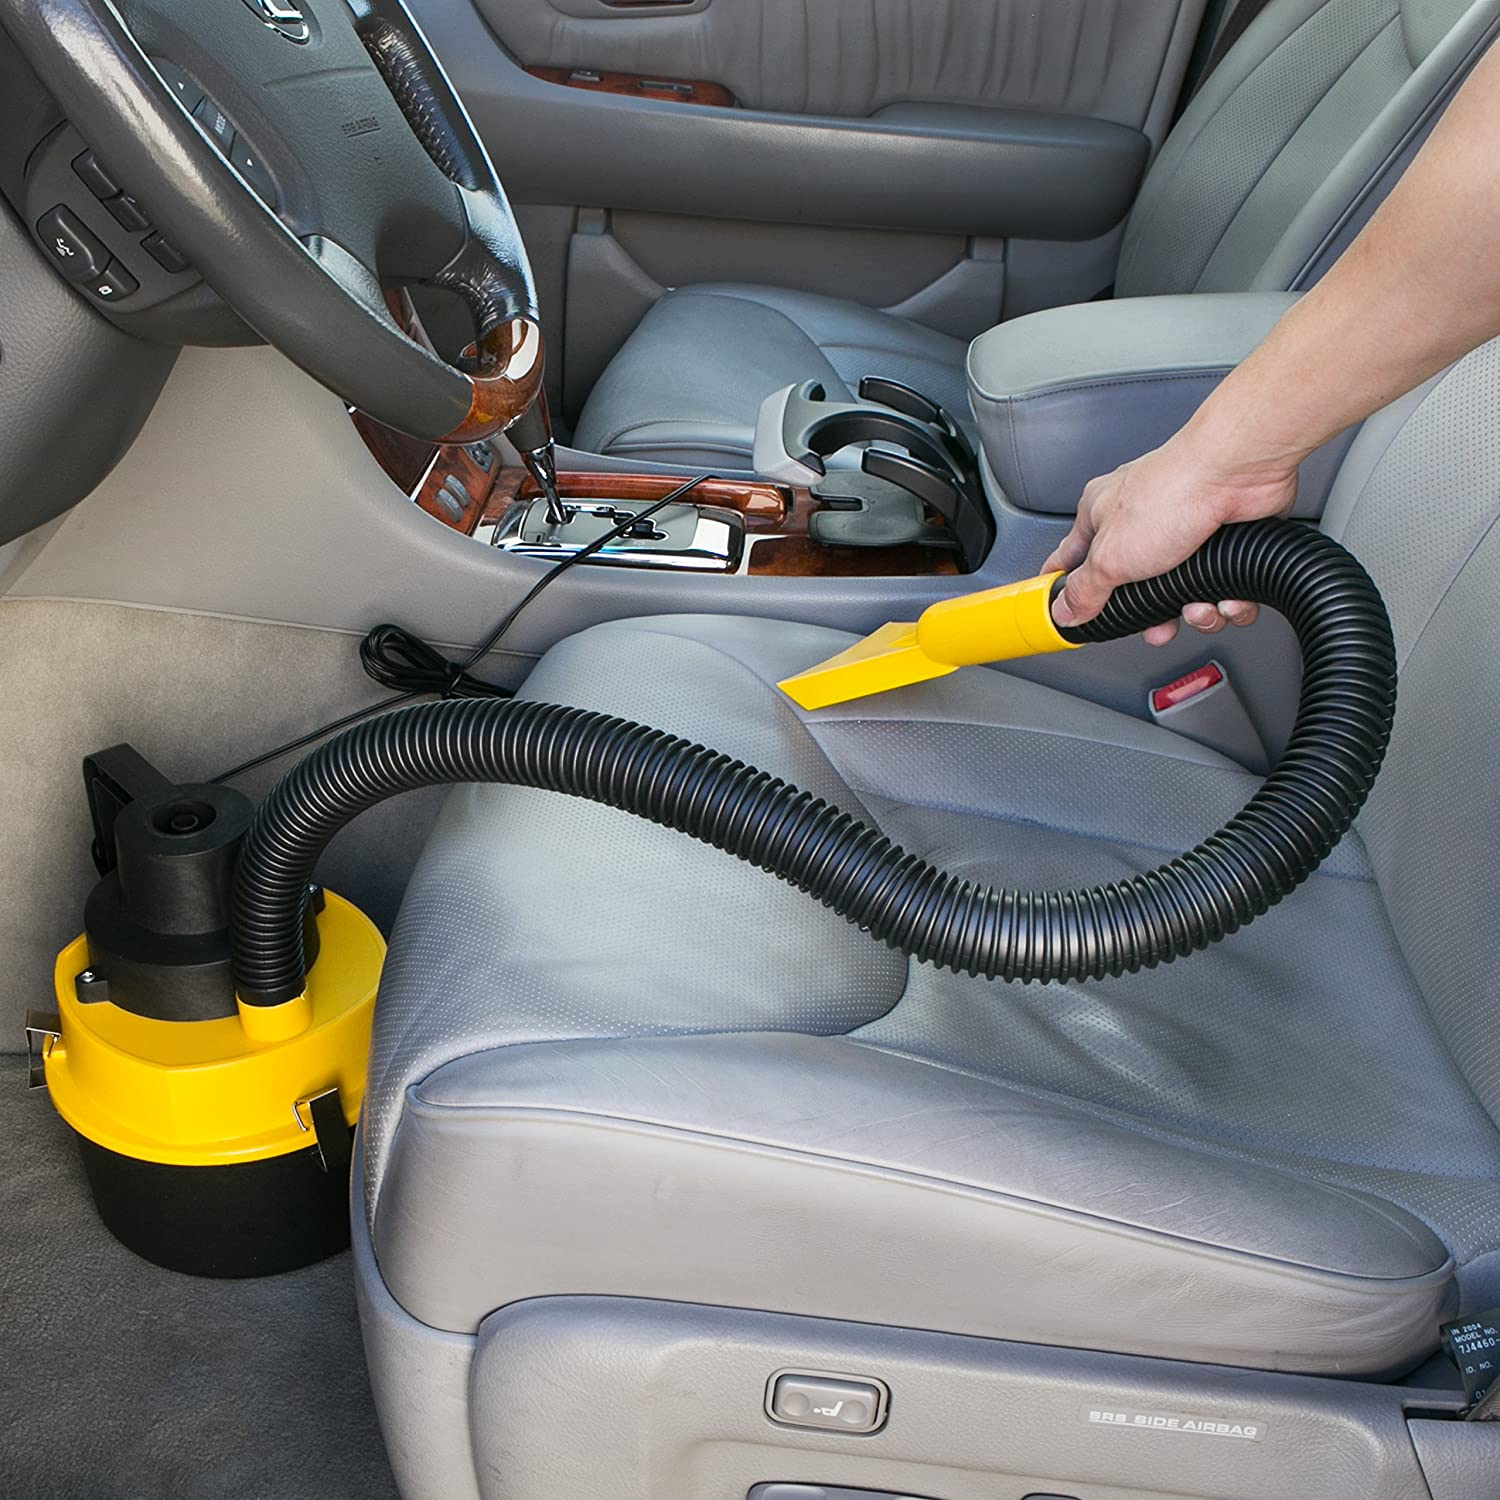 shop vac for bedbugs in the car